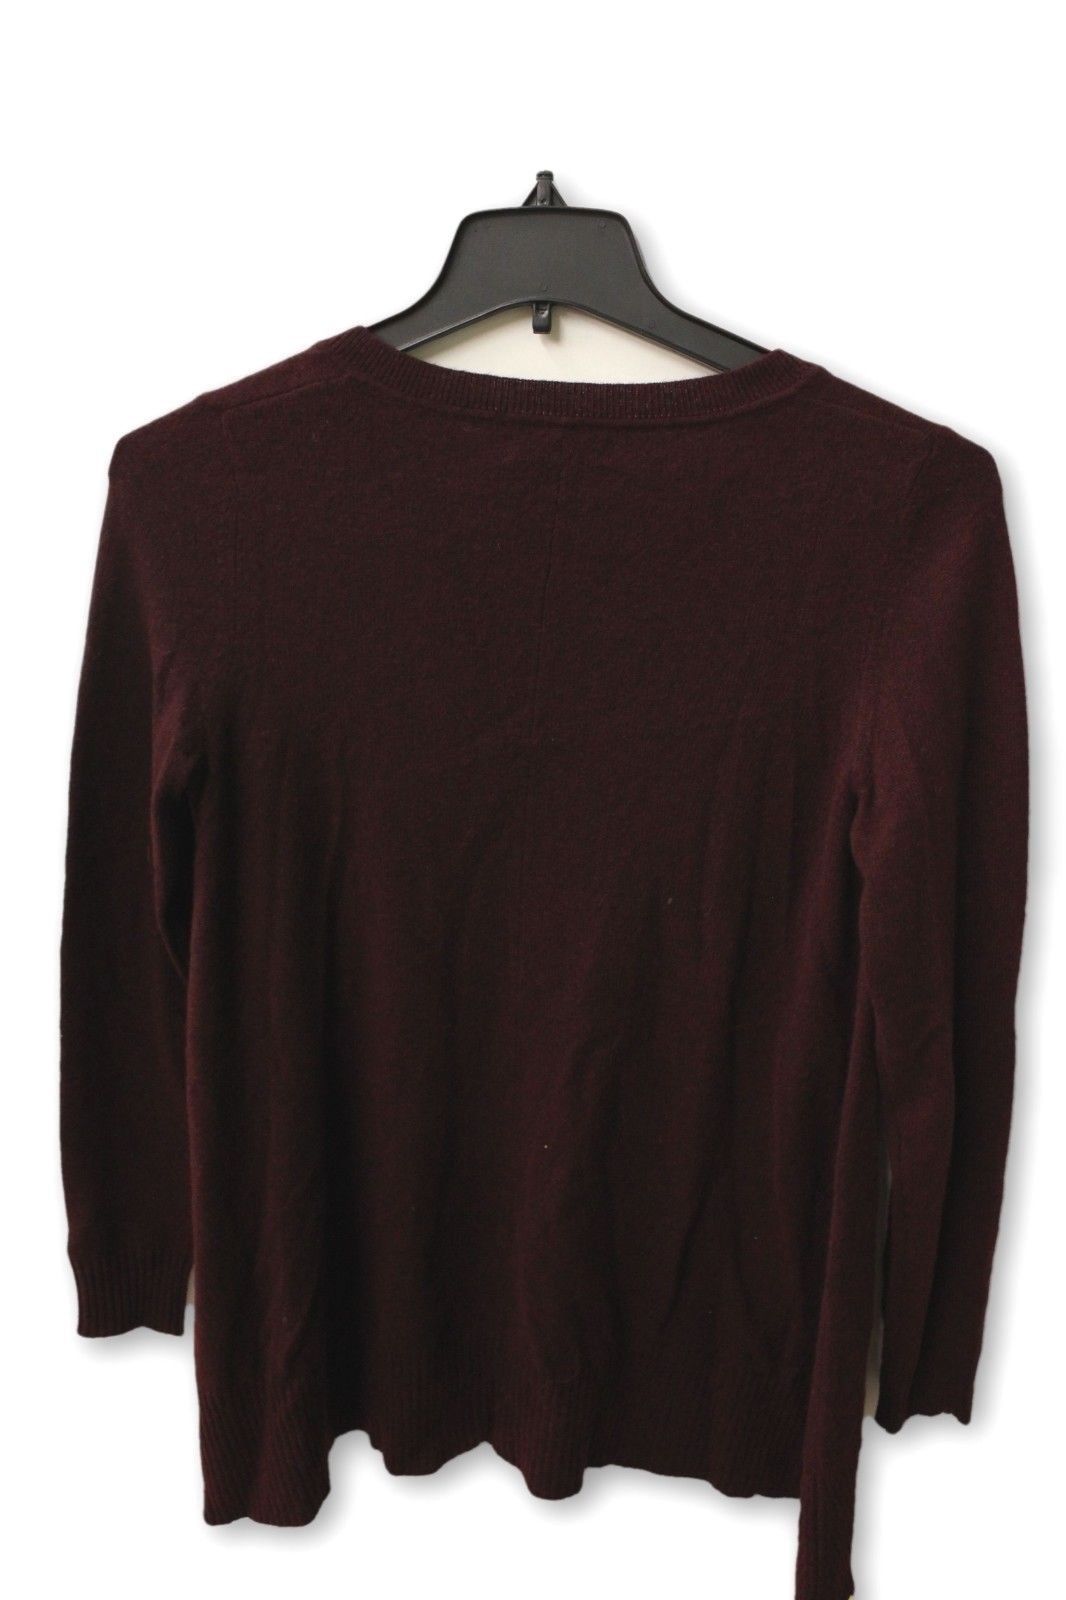 C by Bloomingdale's Women's Cashmere - Maroon Crewneck Sweater NWT